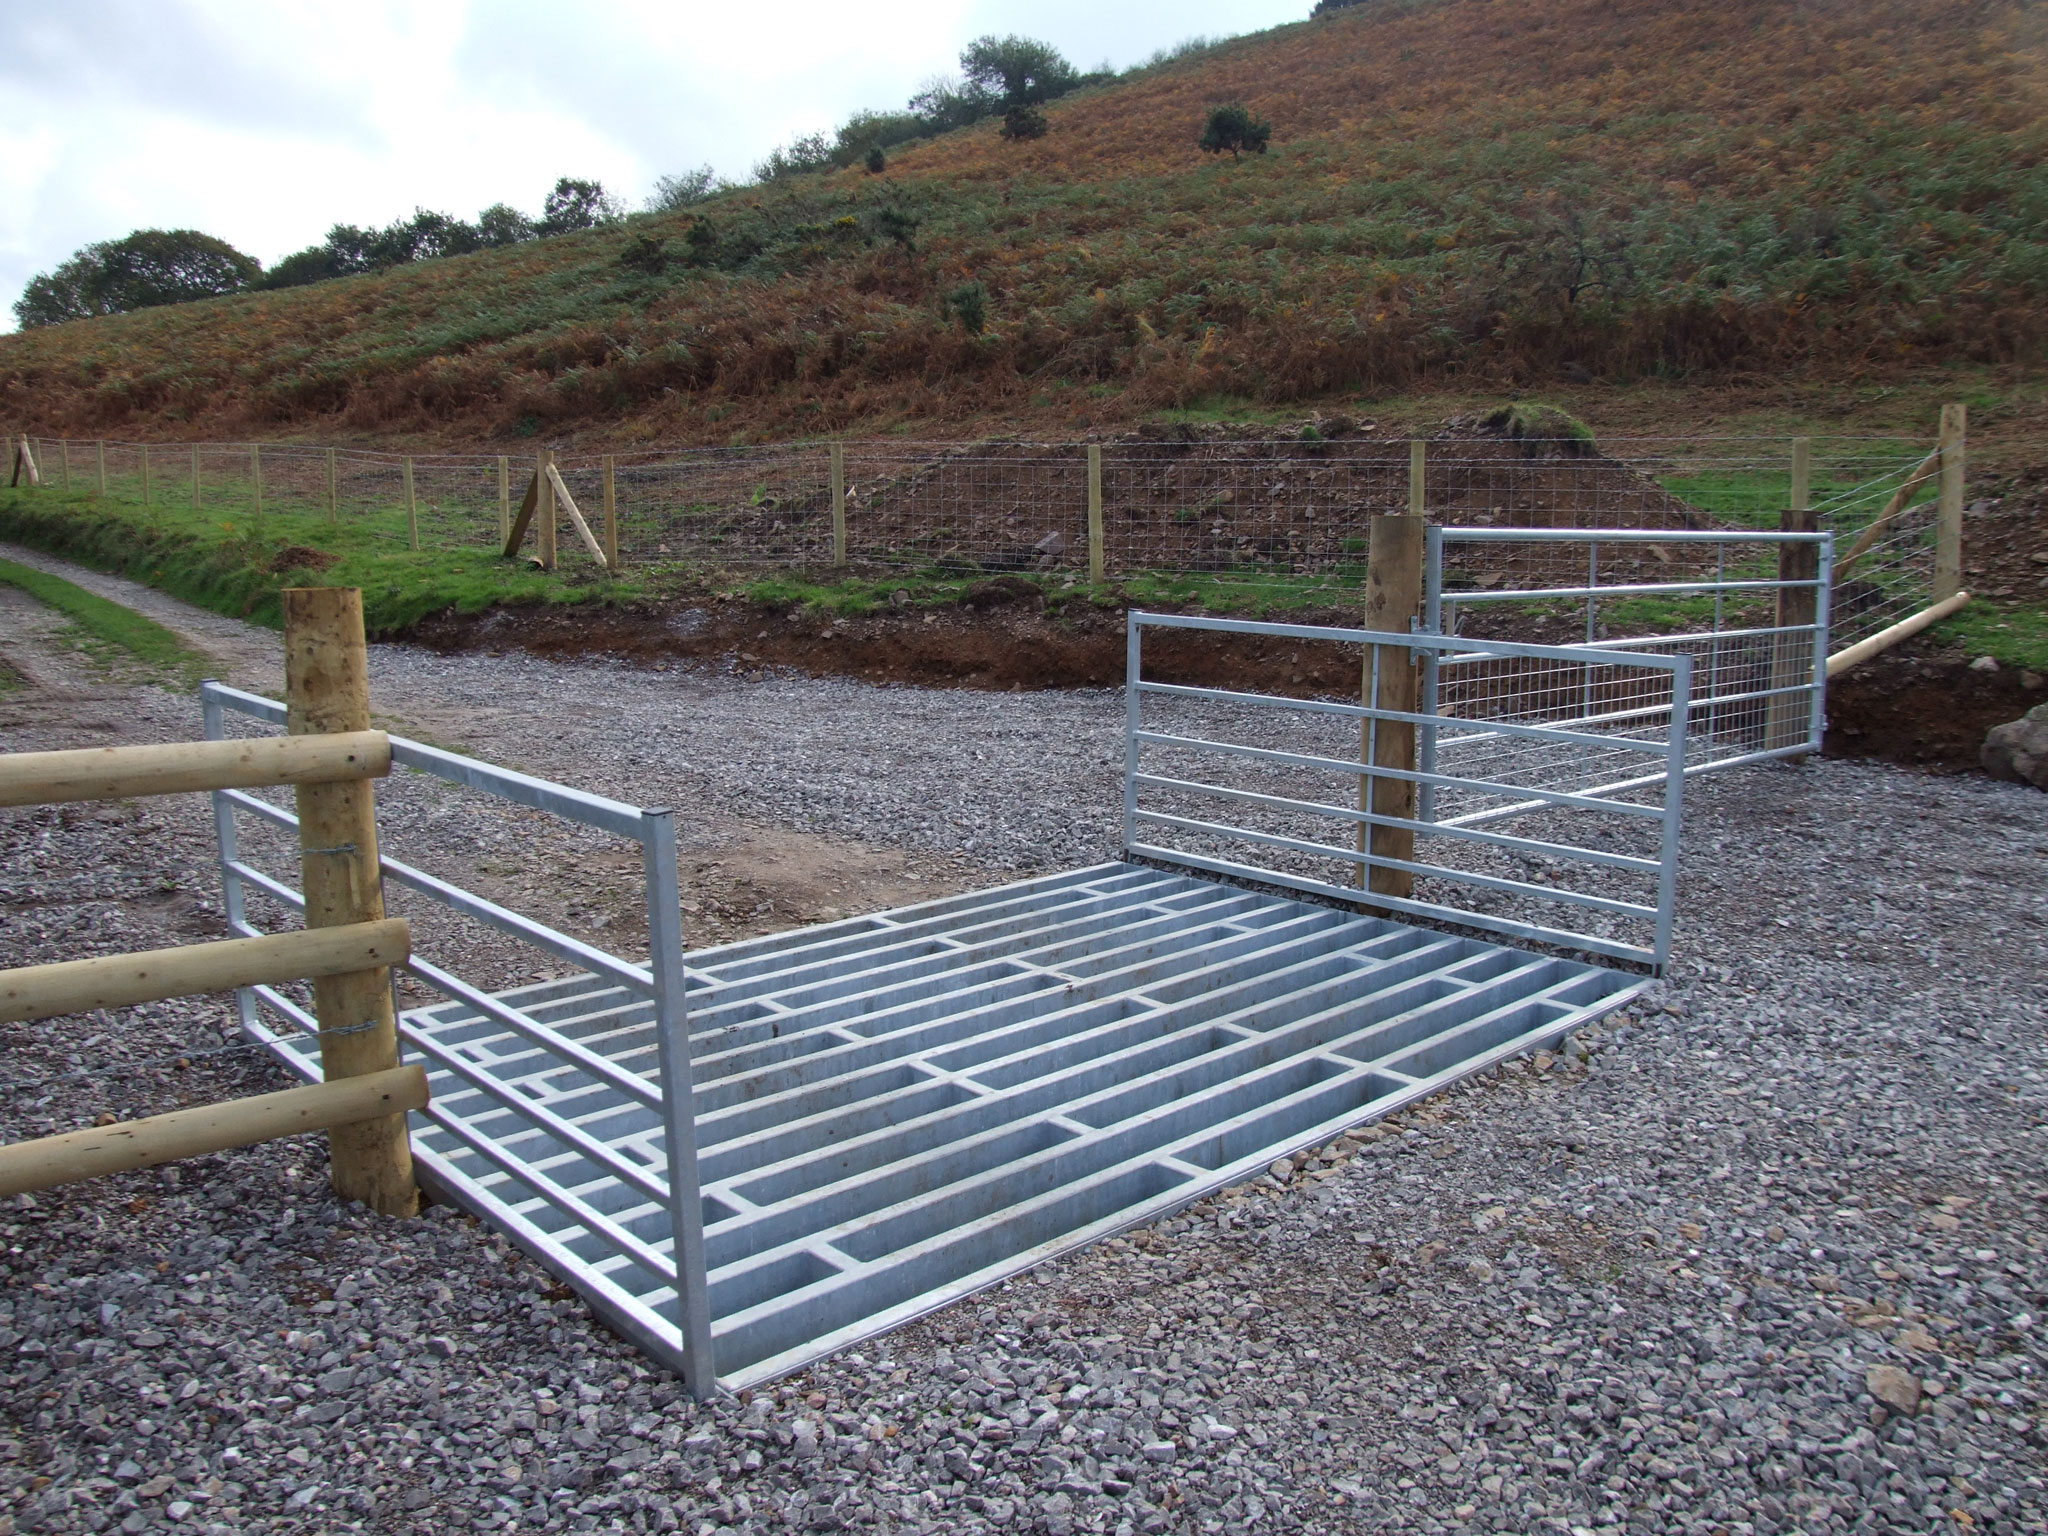 Cattle grids help keep animals from more dangerous areas of road